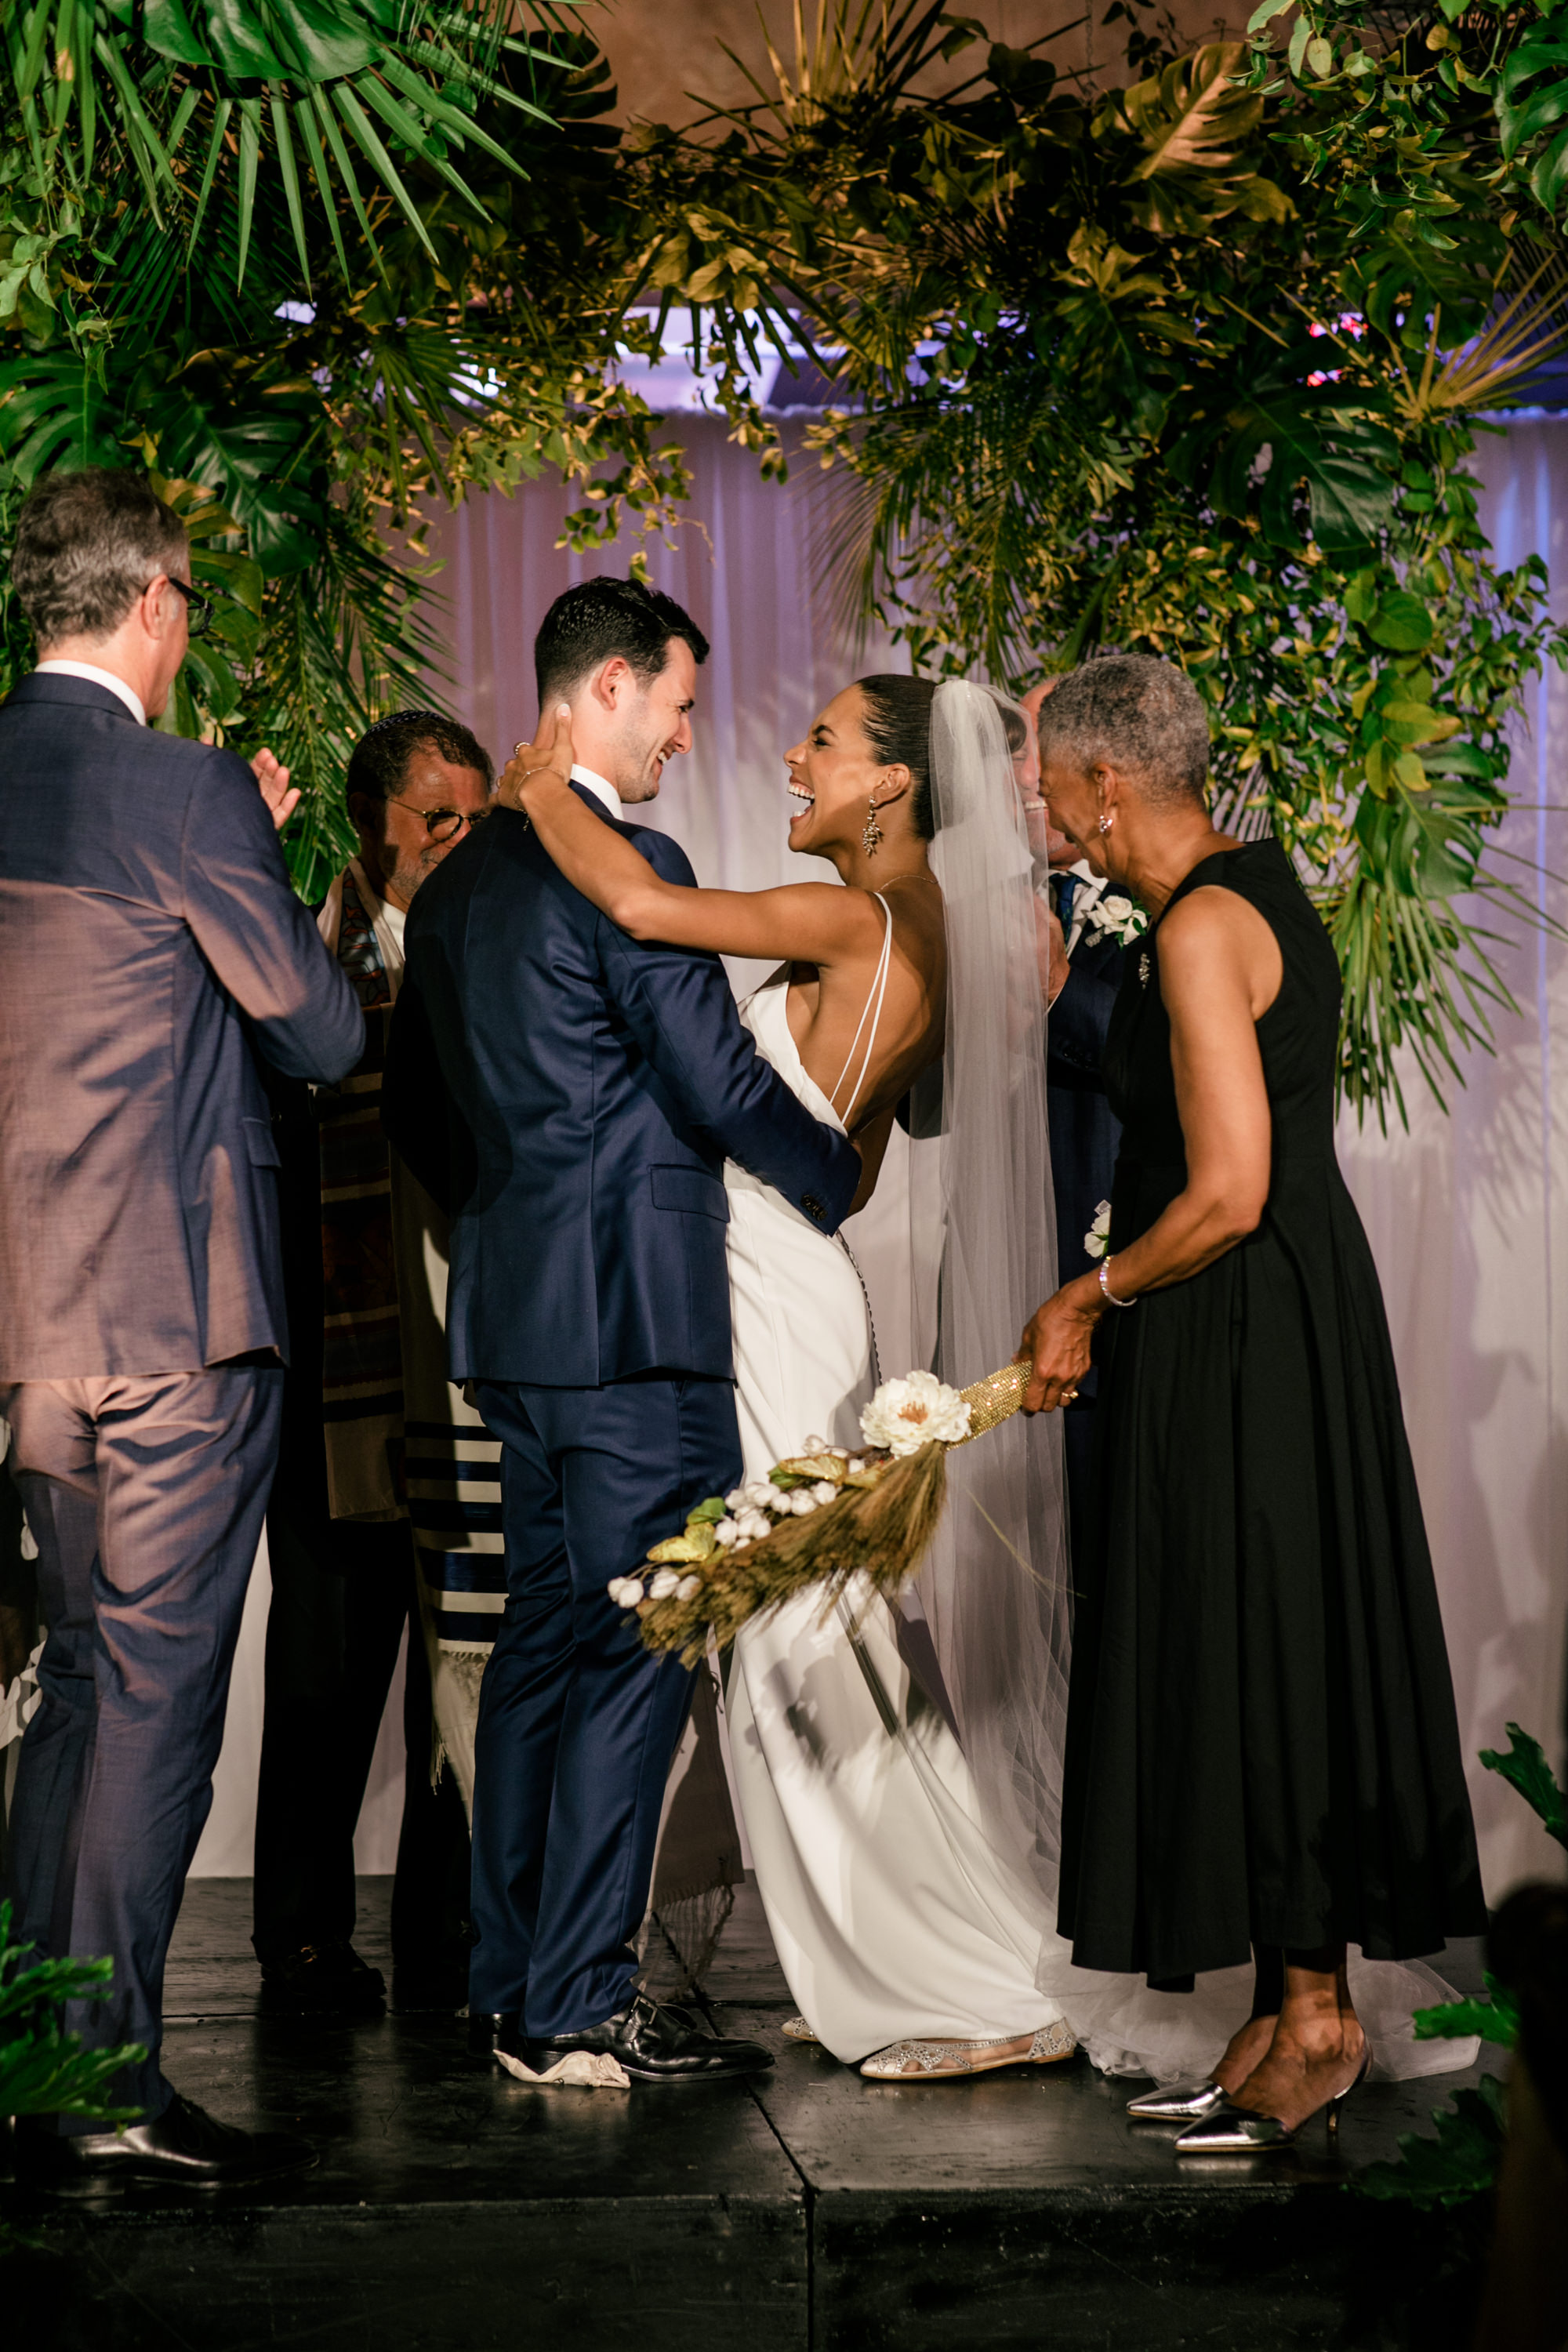 photography-wedding-weddings-natural-candid-dock 5 dc-washington dc-philadelphia-mixed race-editorial-modern-fine-art-058.JPG